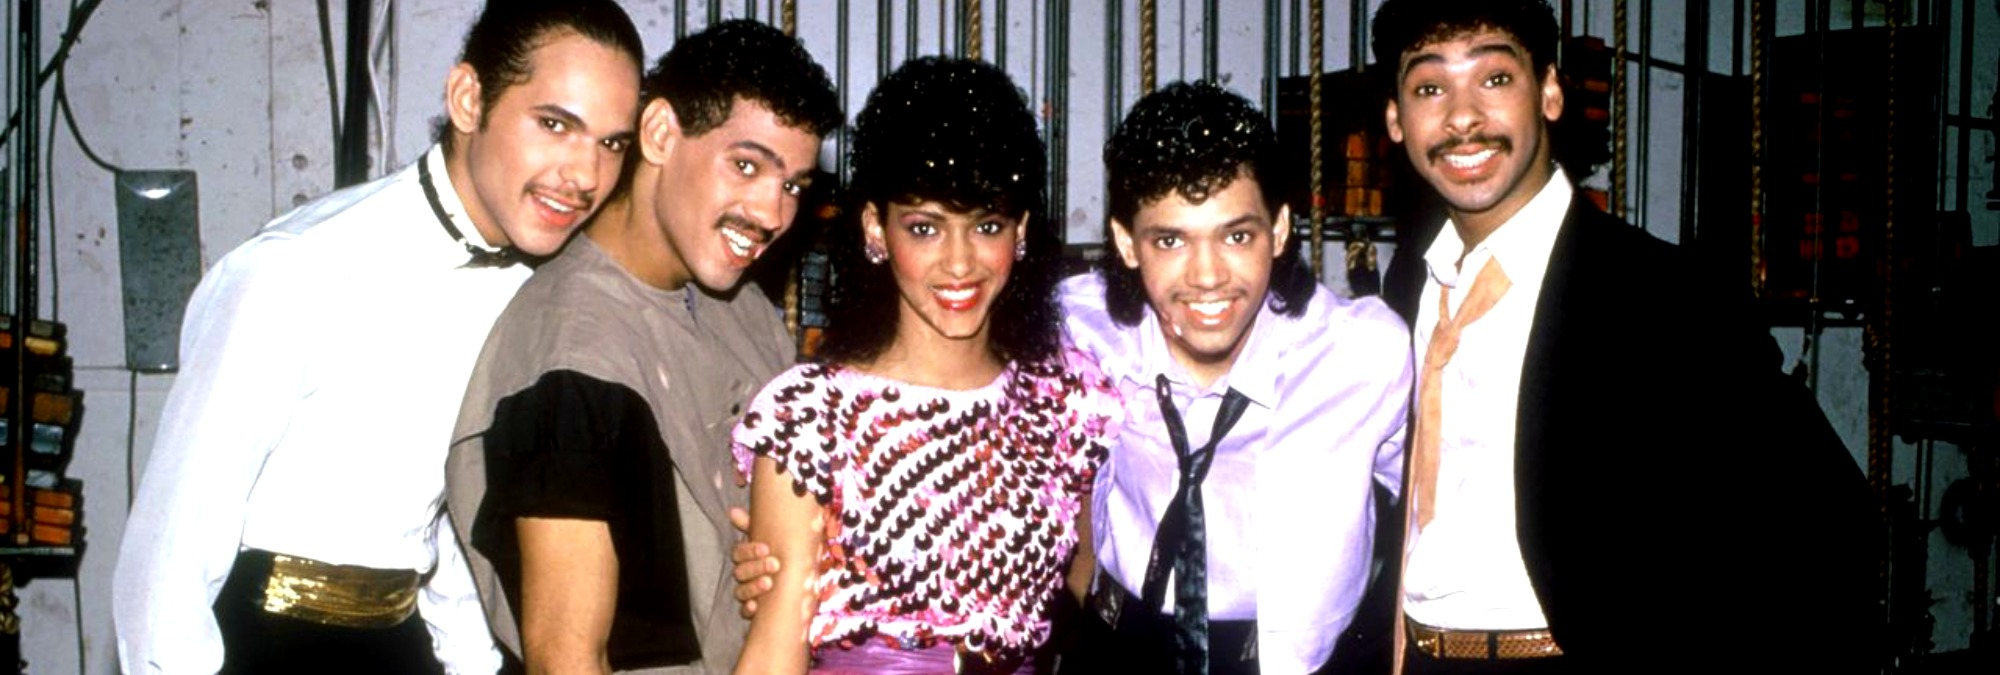 Bobby debarge story comes to tv one